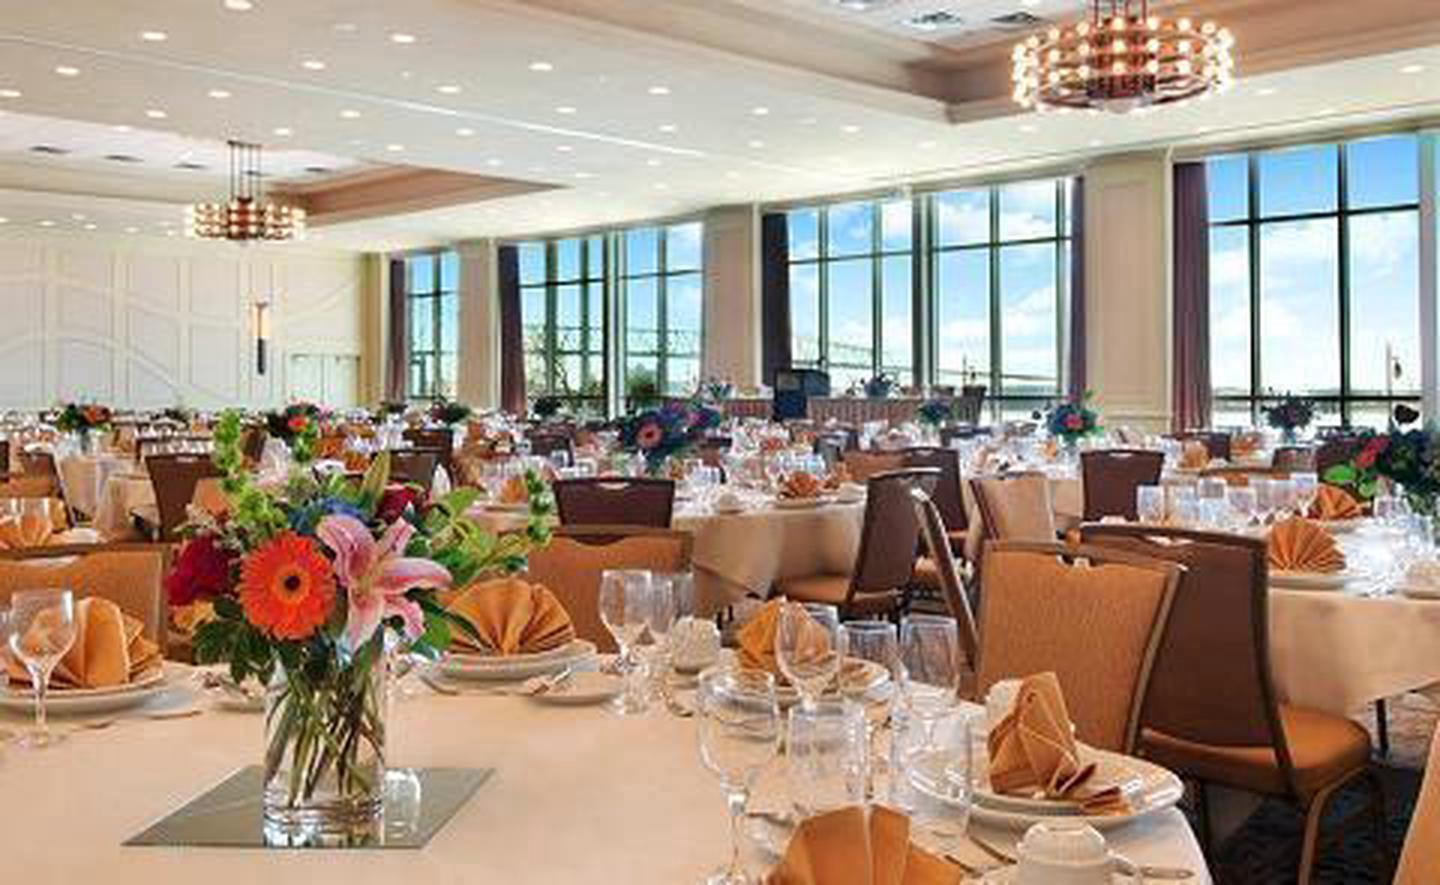 Riverview BallroomThe Riverview Ballroom is one of several meeting spaces available. Spaces can accommodate up to 800 guests.